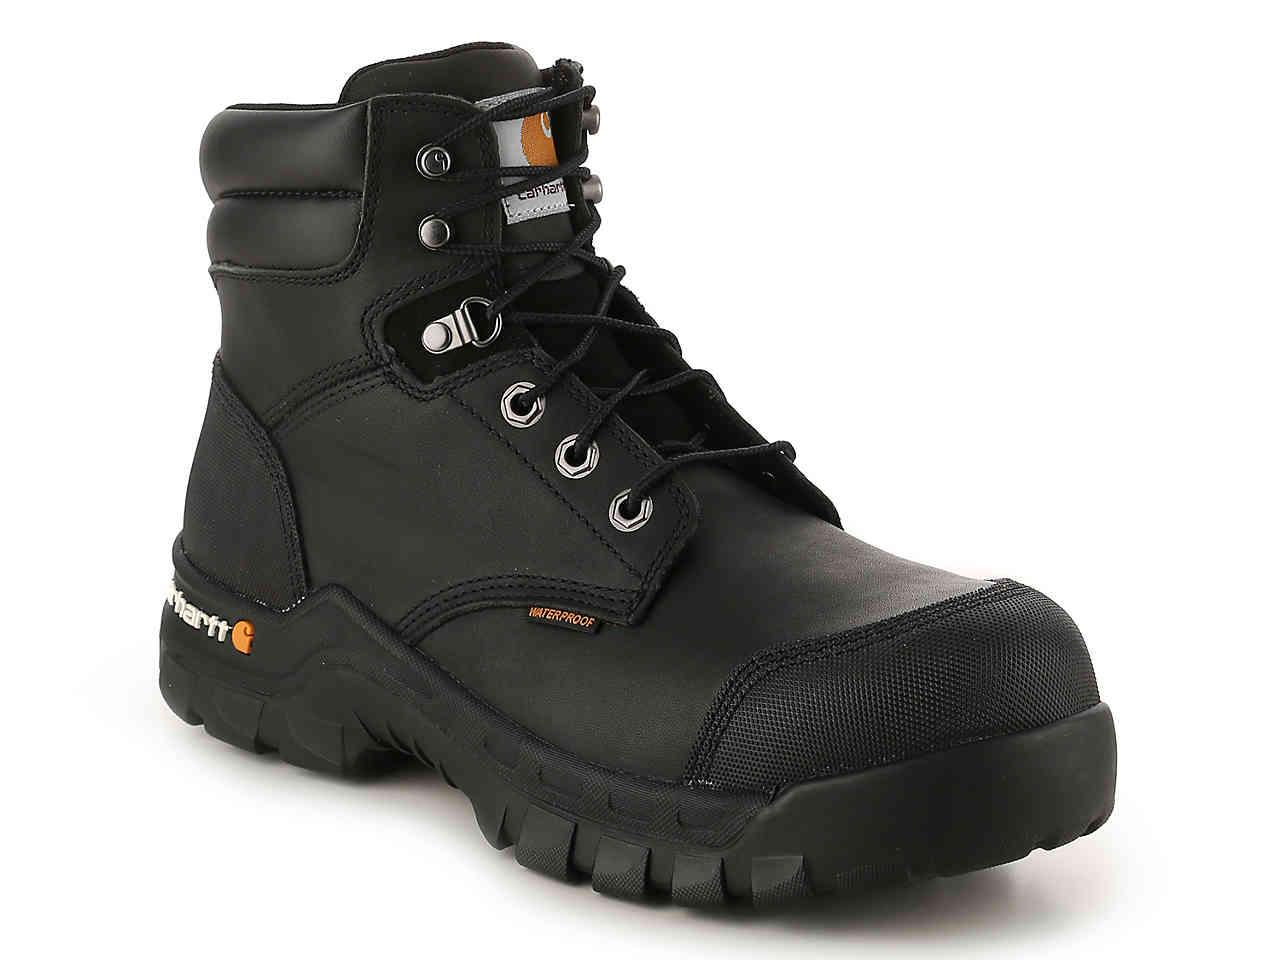 0d9b0dc0690 Lyst - Carhartt Rugged Flex 6-inch Work Boot in Black for Men - Save 13%